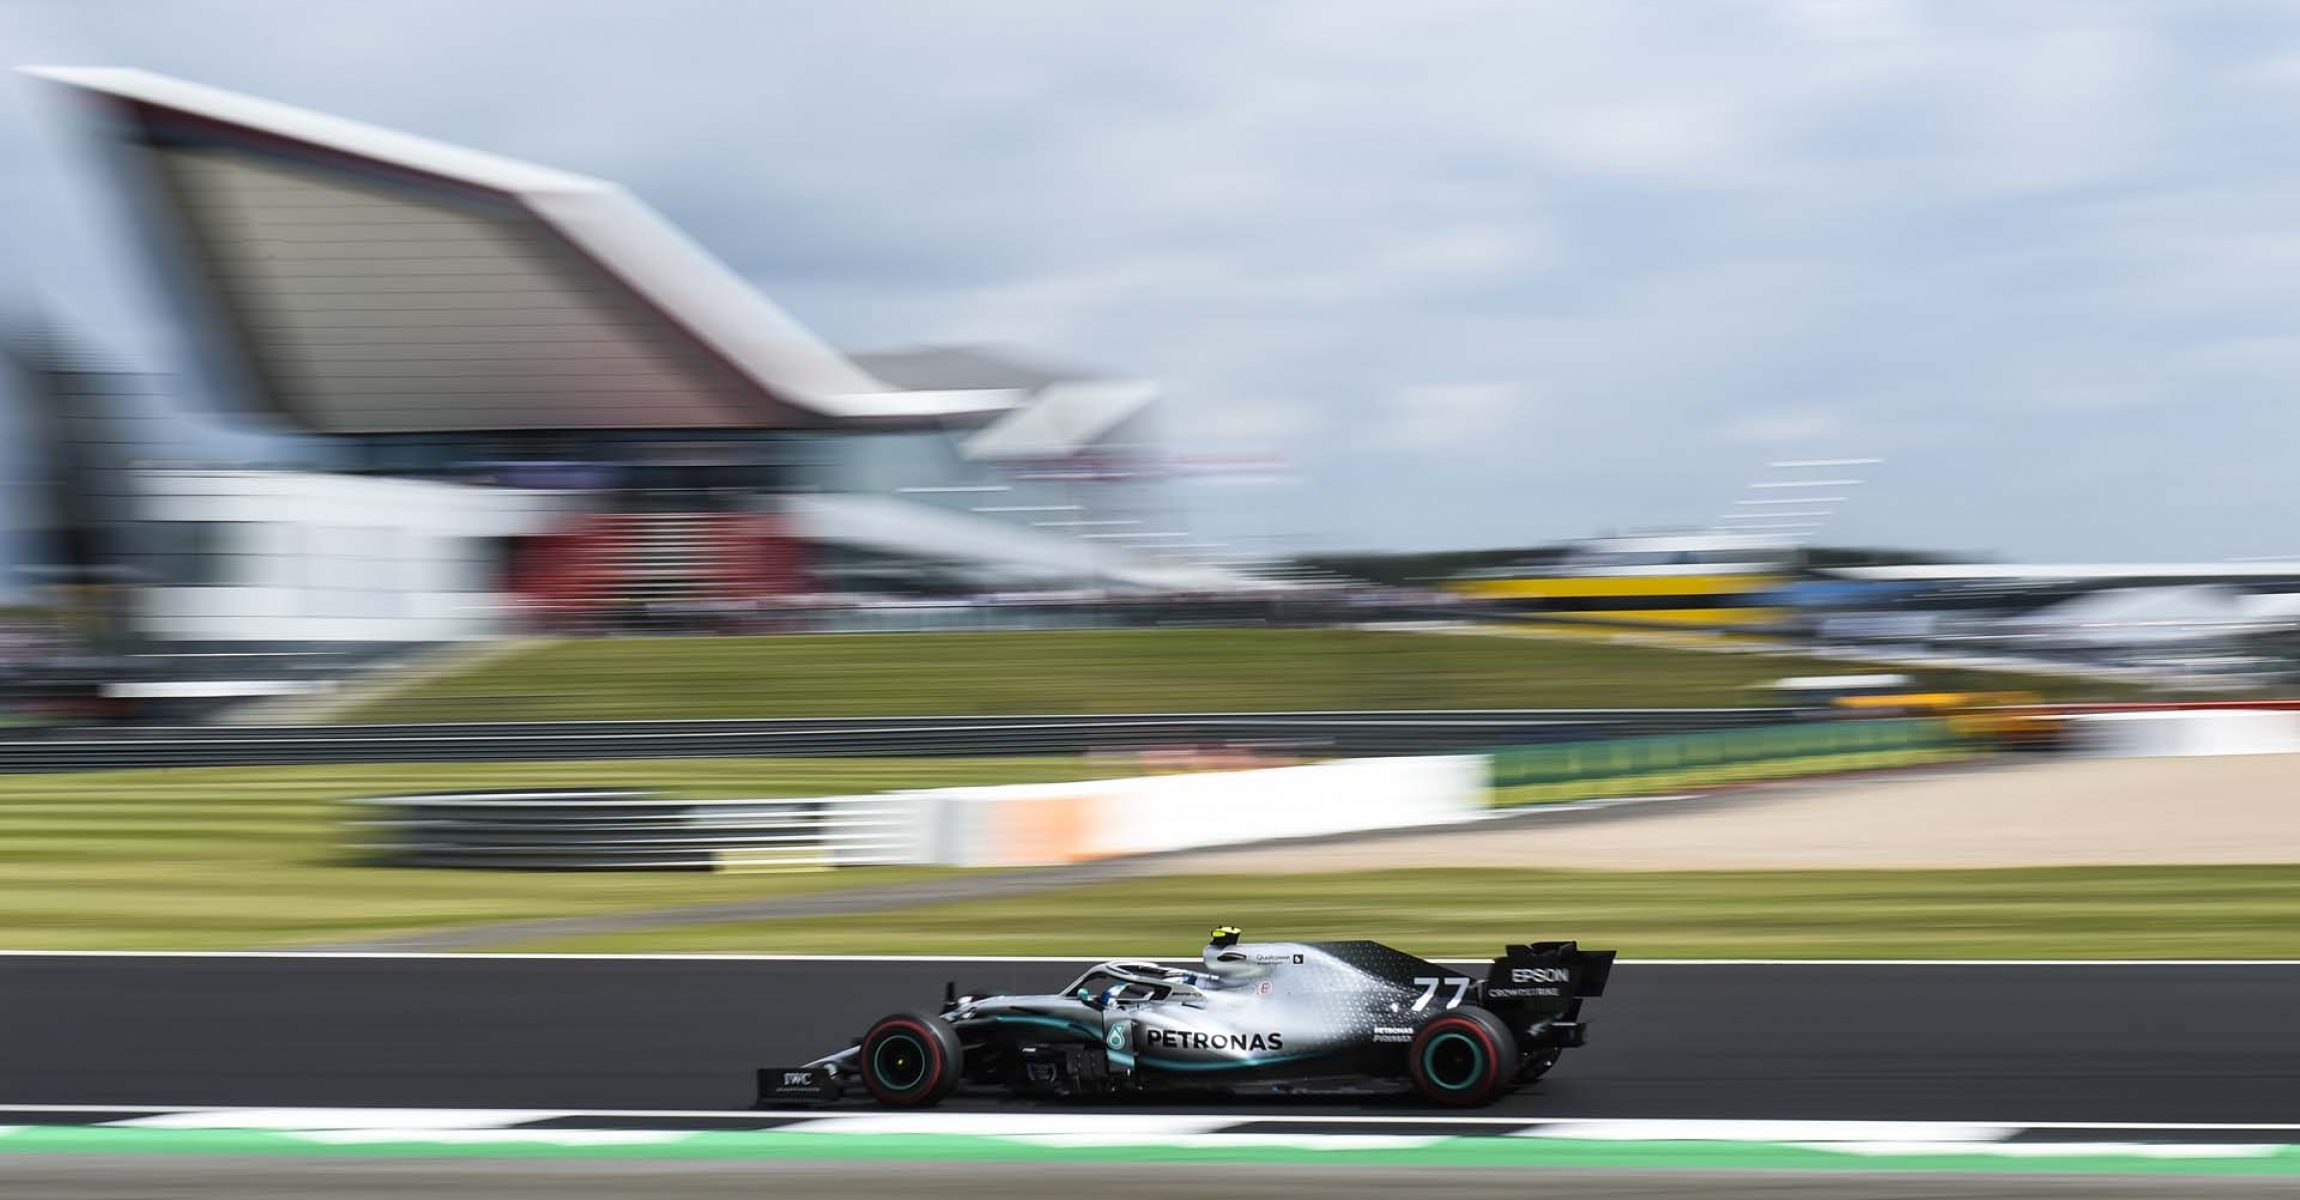 2019 British Grand Prix, Friday - LAT Images Valtteri Bottas Mercedes